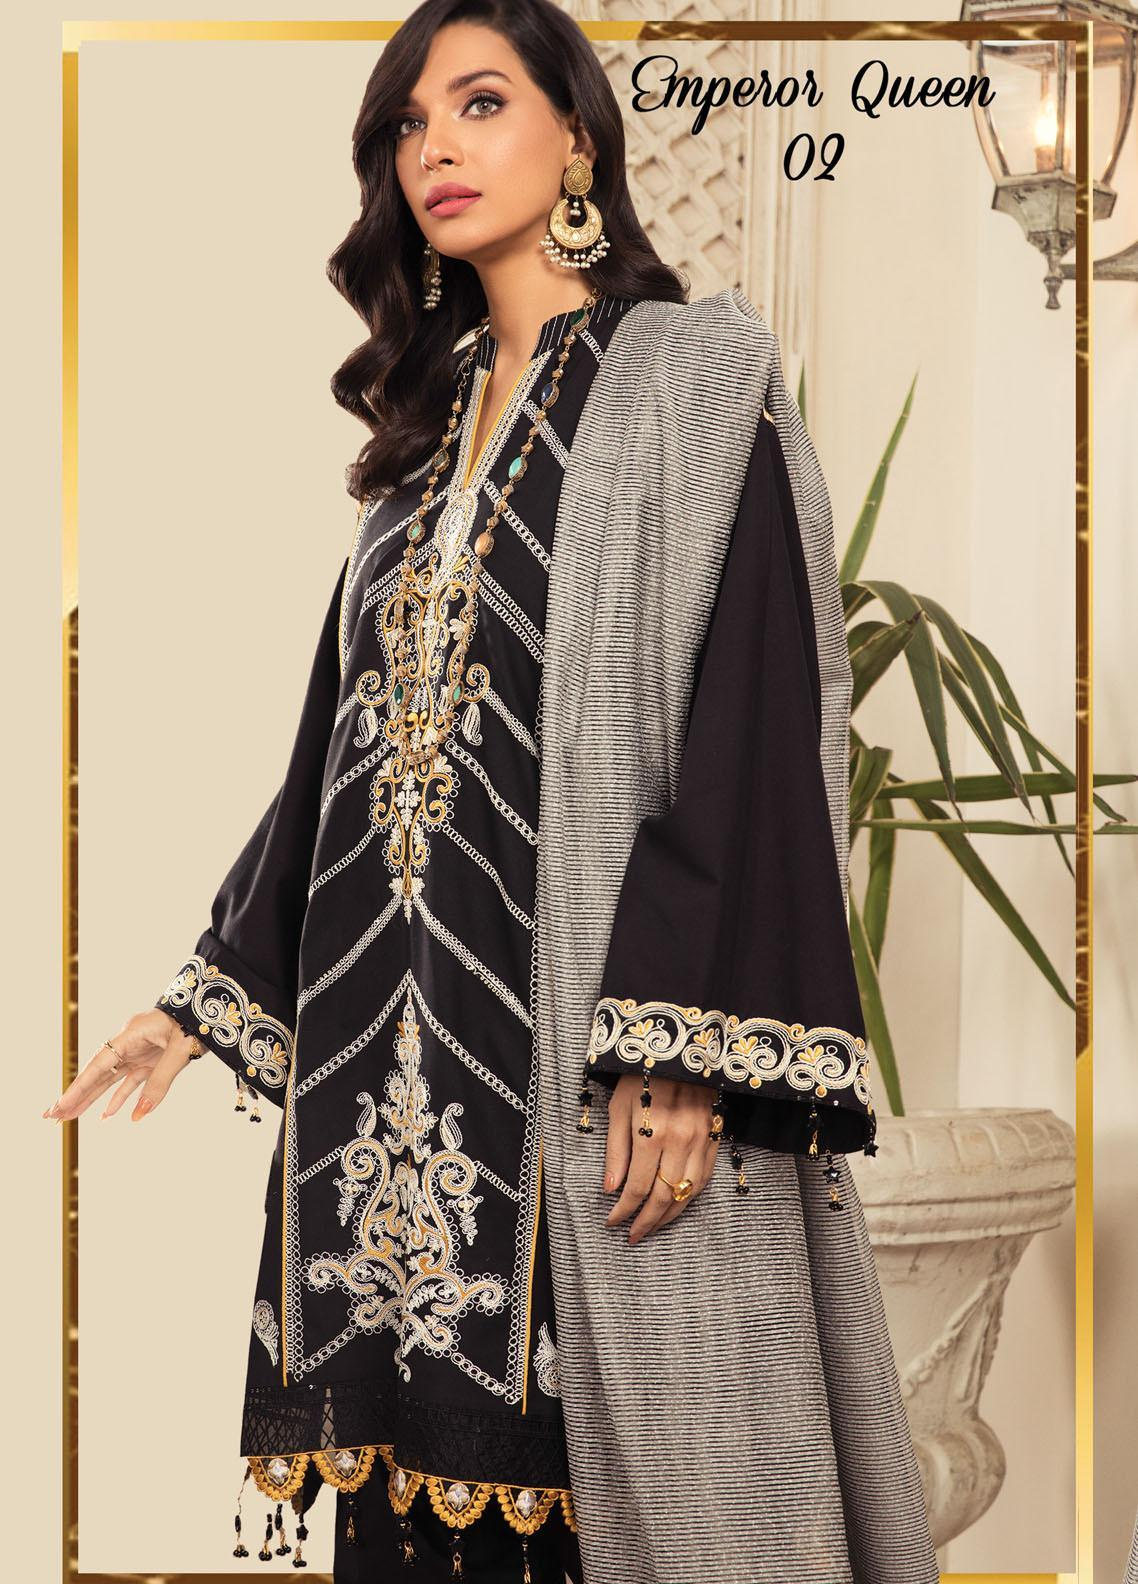 Anamta by Mahwish Ishtiaq Embroidered Lawn Suits Unstitched 3 Piece ANT21L 02-Emperor Queen - Luxury Collection